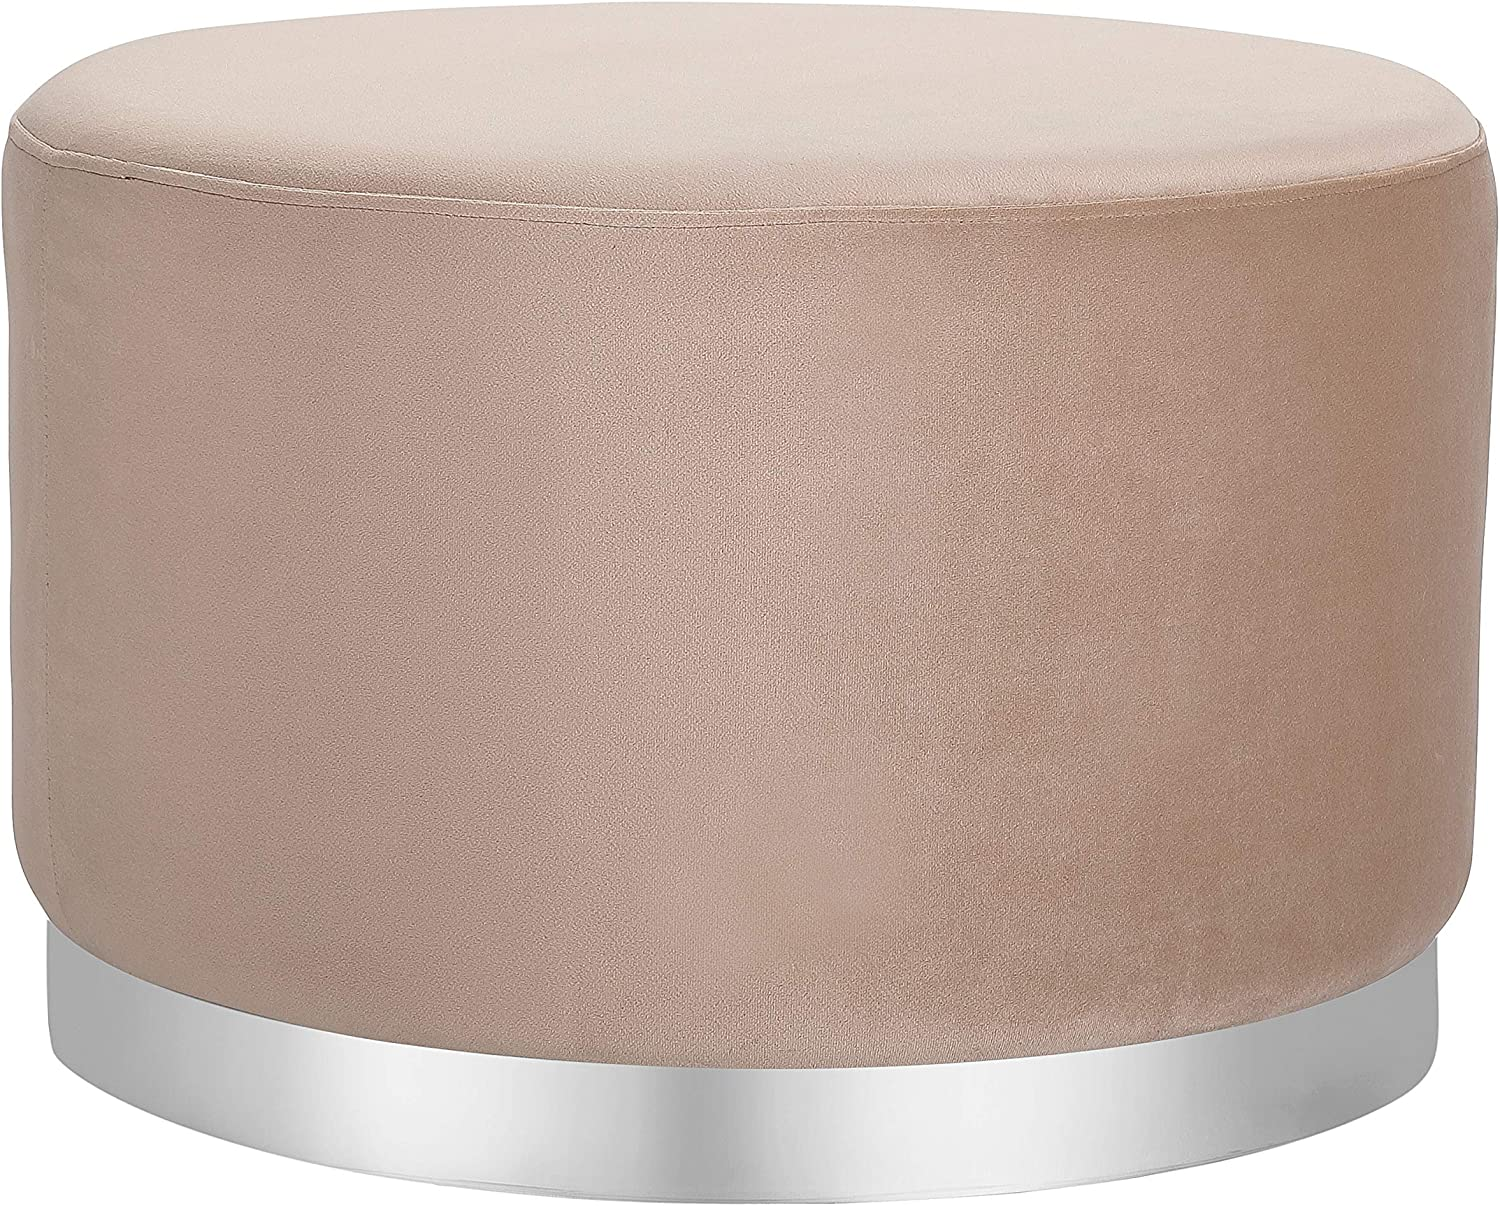 BirdRock Home Round Taupe Velvet Ottoman Foot Stool - Soft Large Padded Stool – Silver Trim – Coffee Table - Great for The Living Room or Bedroom – Decorative Furniture – Foot Rest